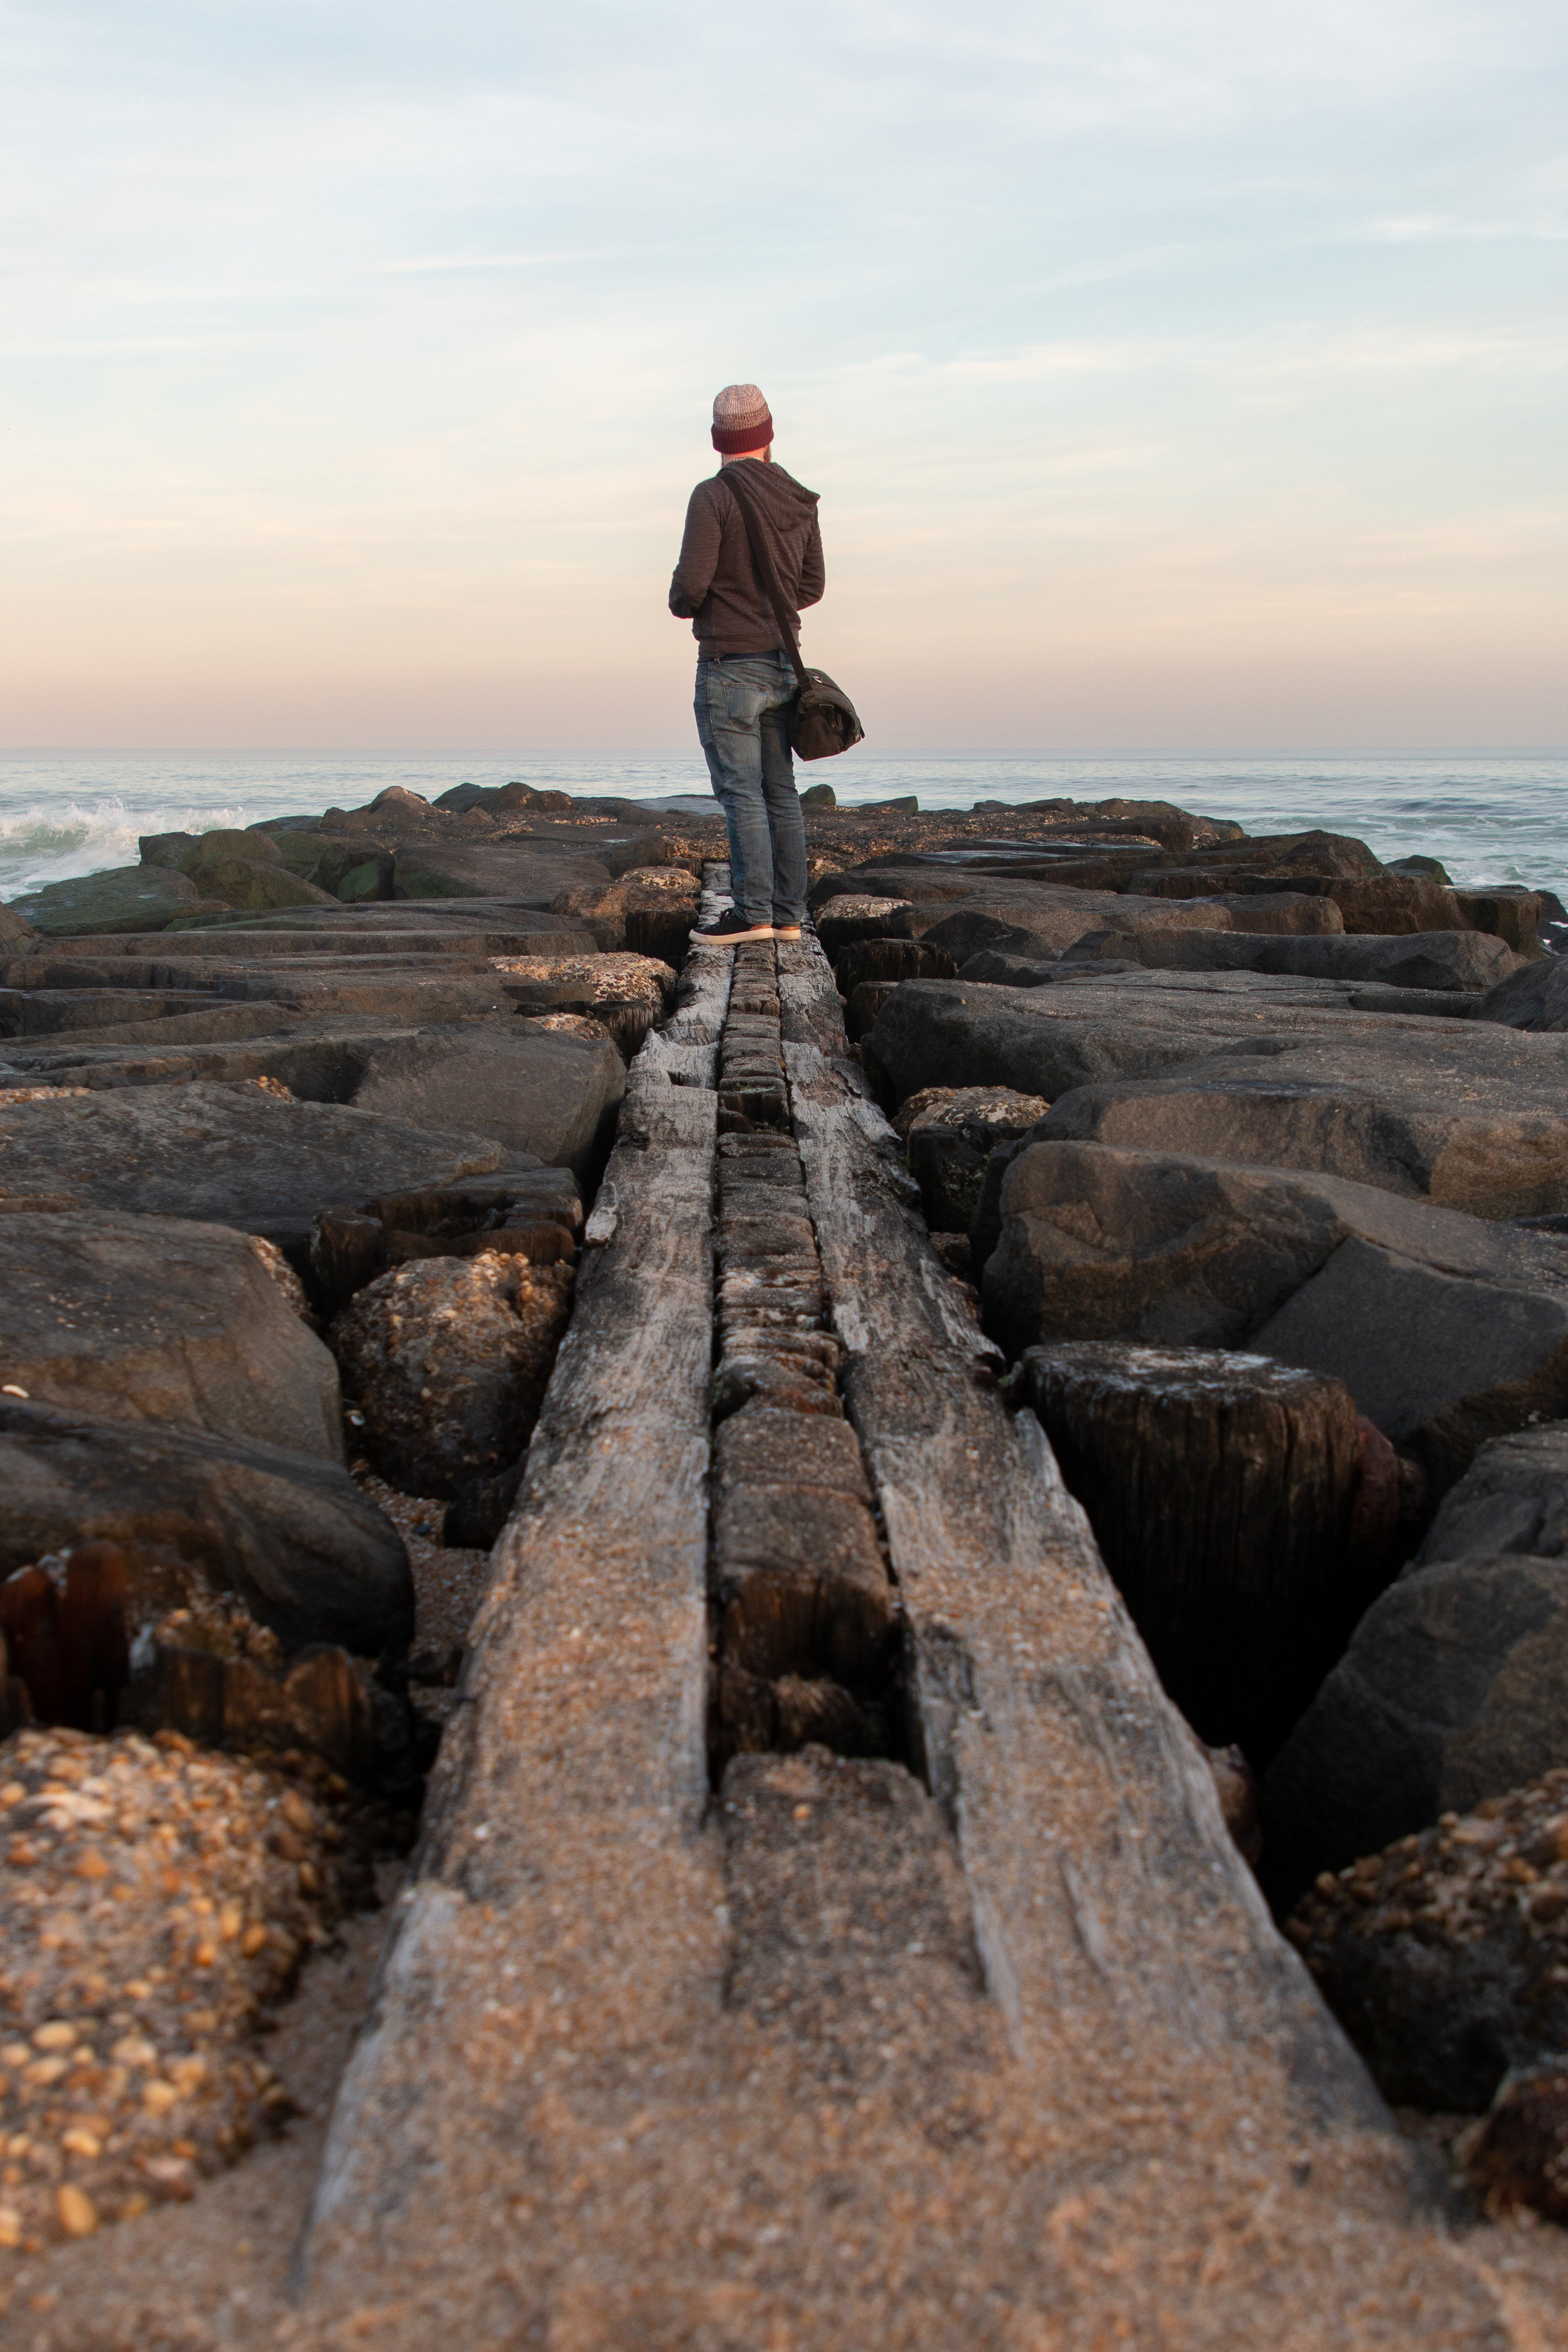 Man standing on rocks in Asbury Park, New Jersey. Photo by Kayleigh Ann Archbold.